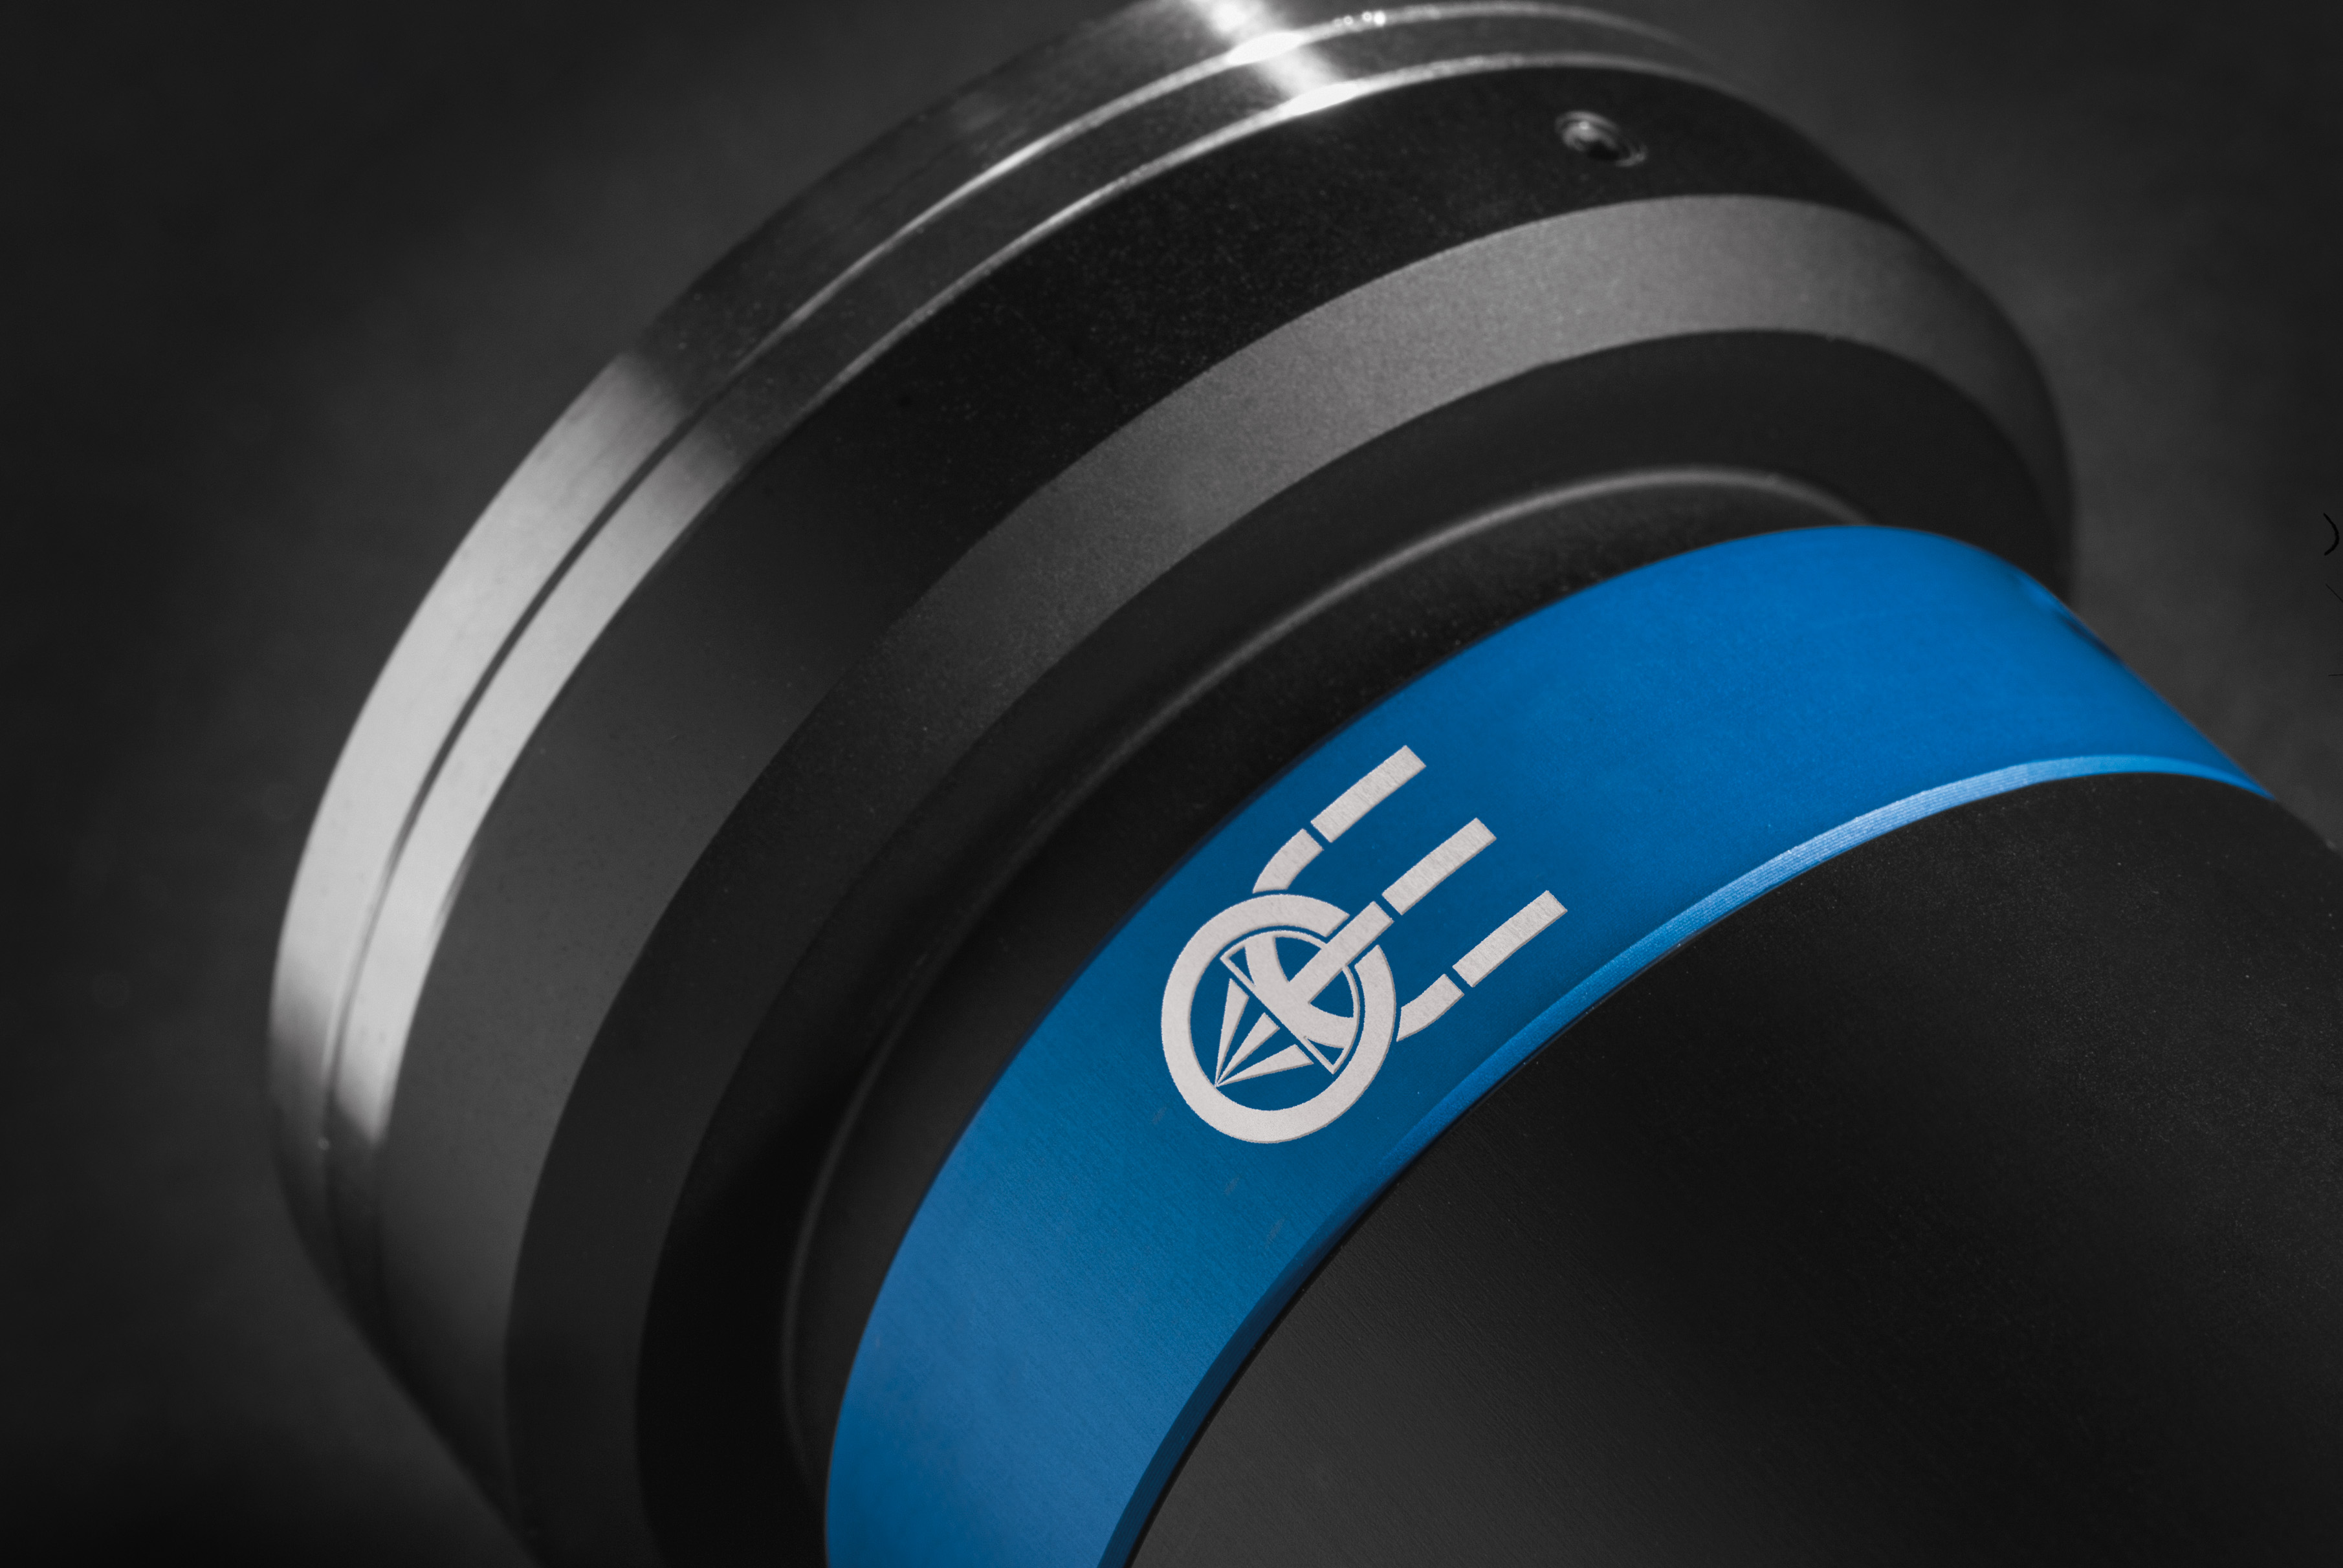 Close up photo of a TC4K telecentric lens